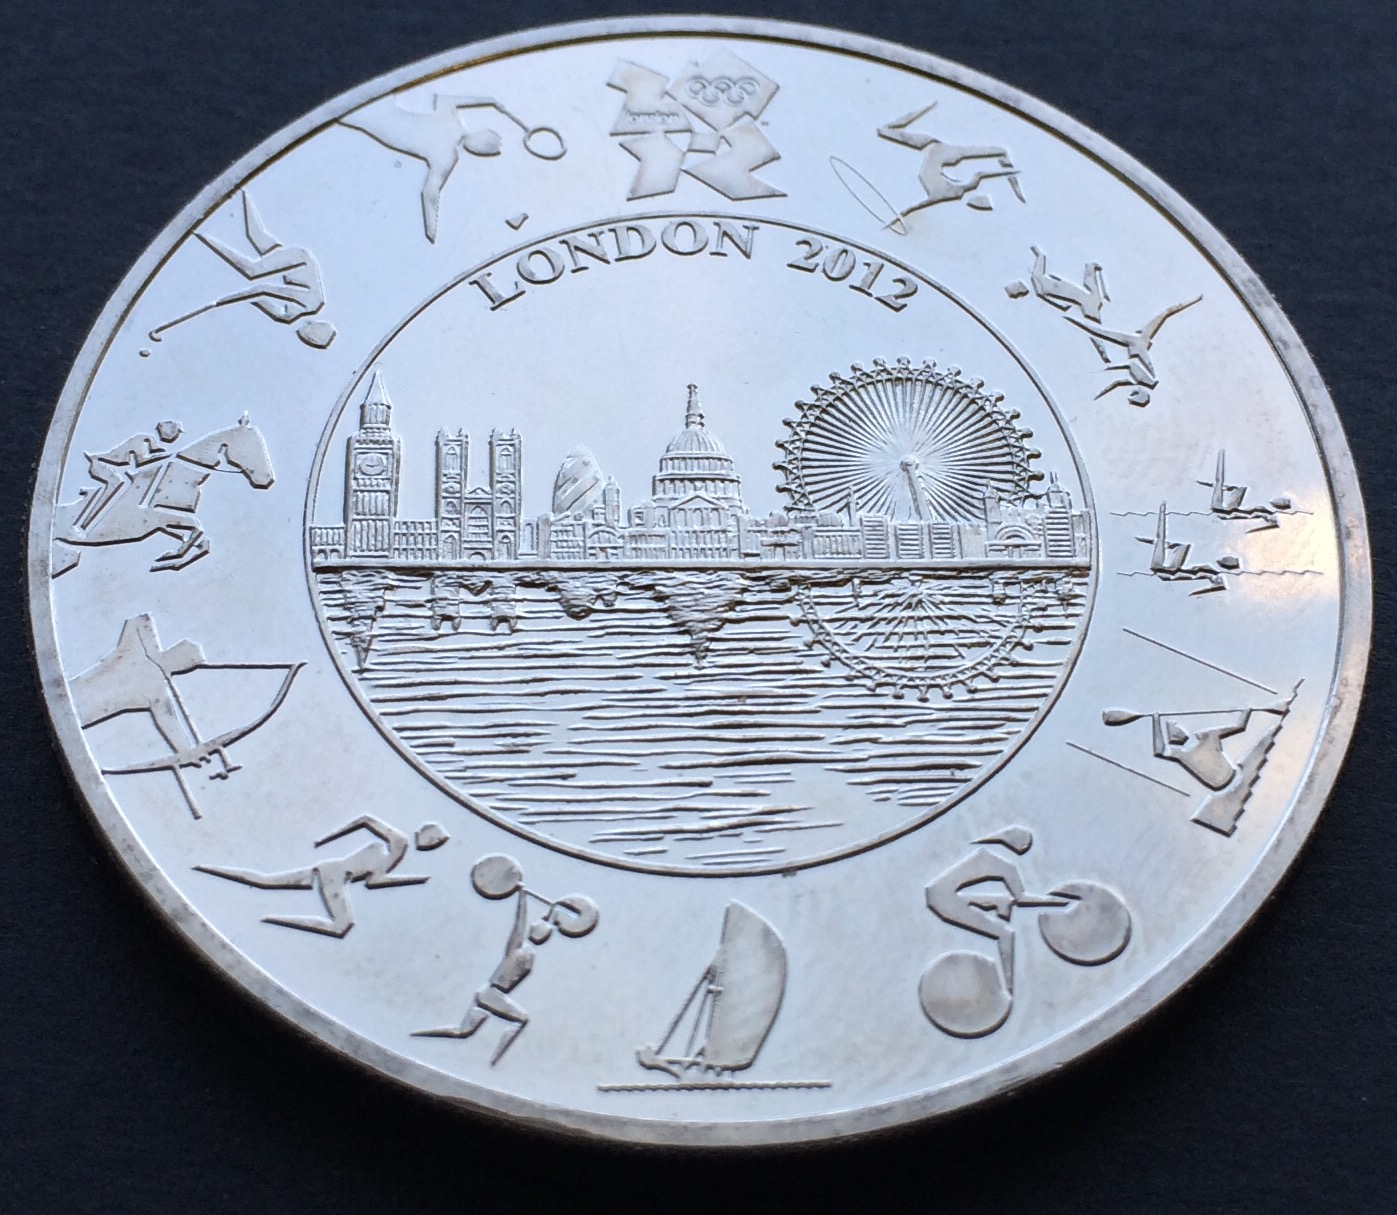 olympic - £5 Coins - My top 5 designs